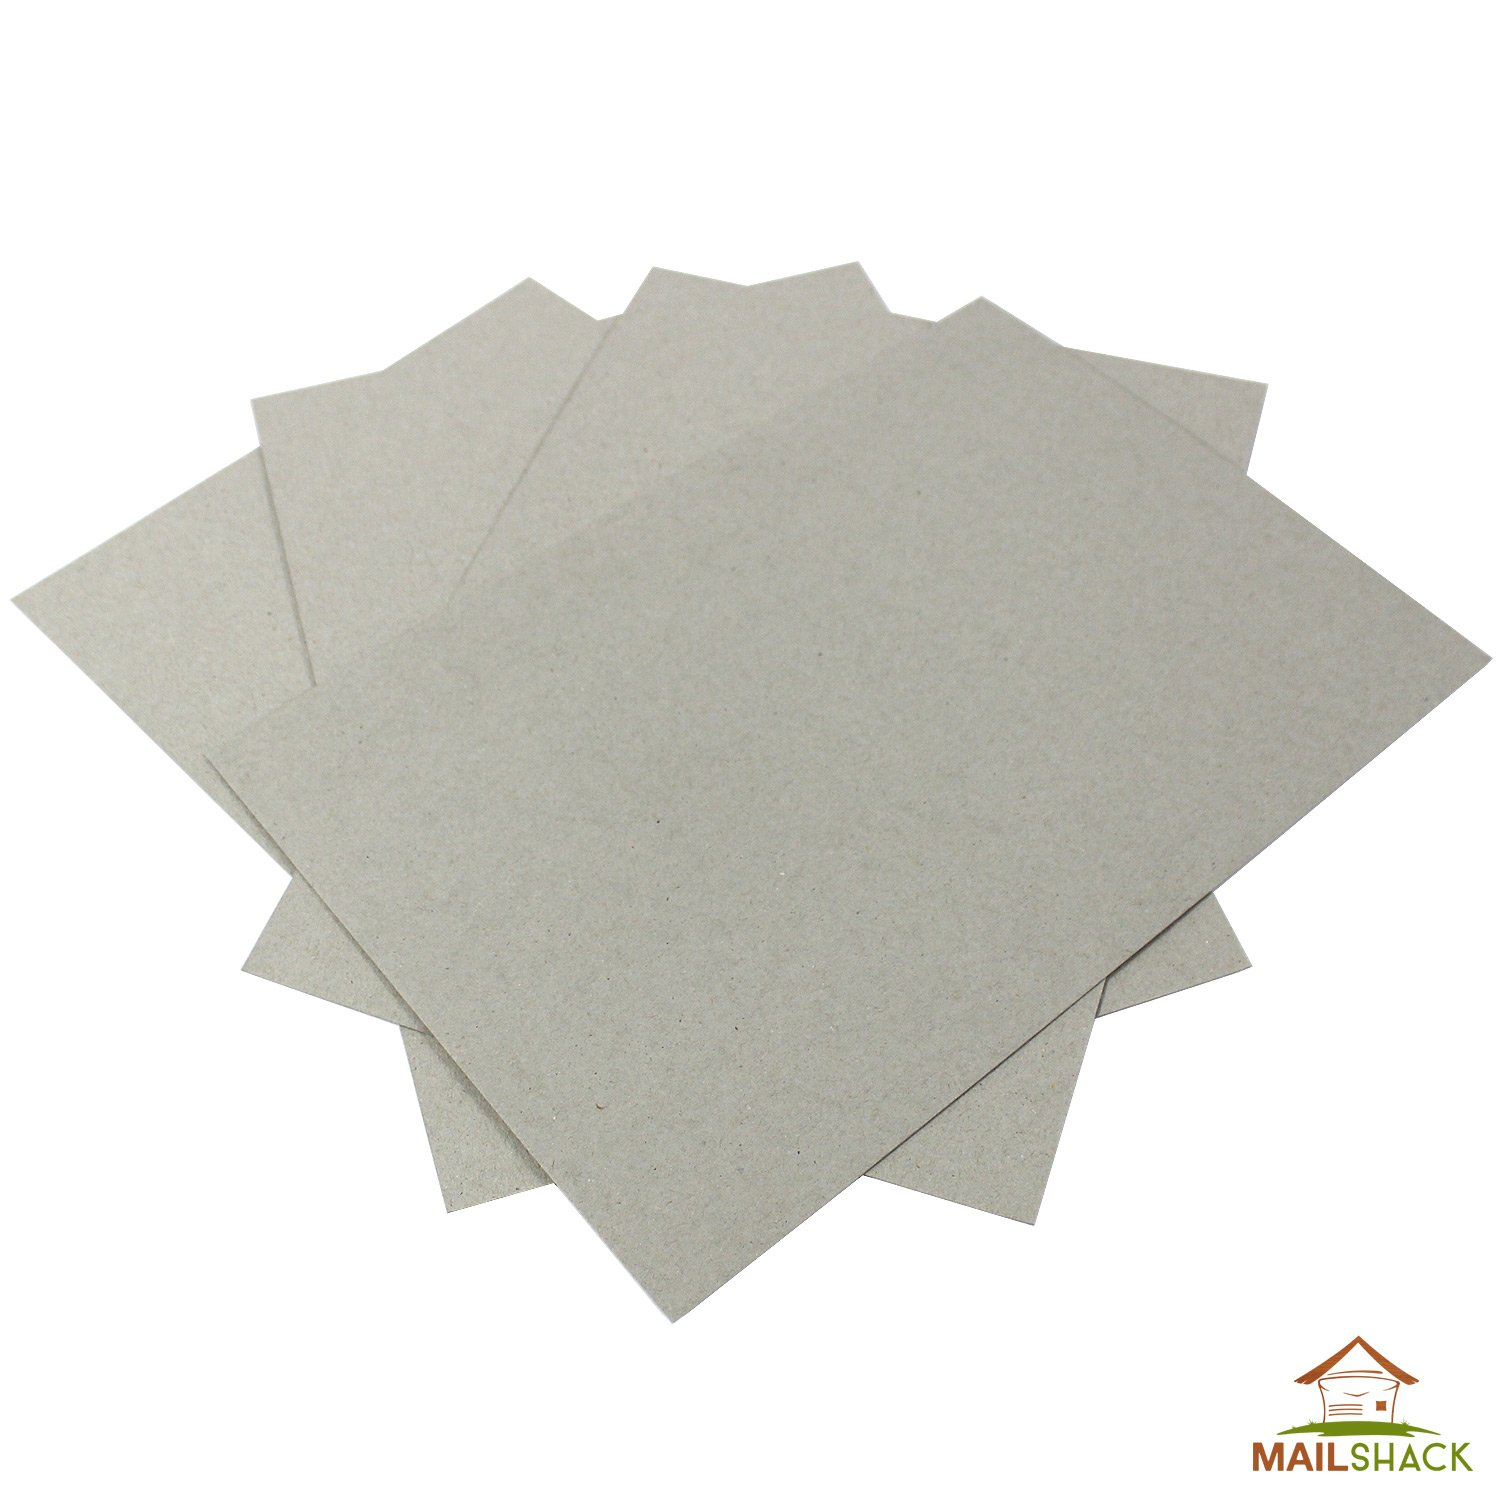 100 Sheets A4 PREMIUM 1000 MICRON 1mm GREYBOARD THICK STRONG Backing Card Craft MAILSHACK